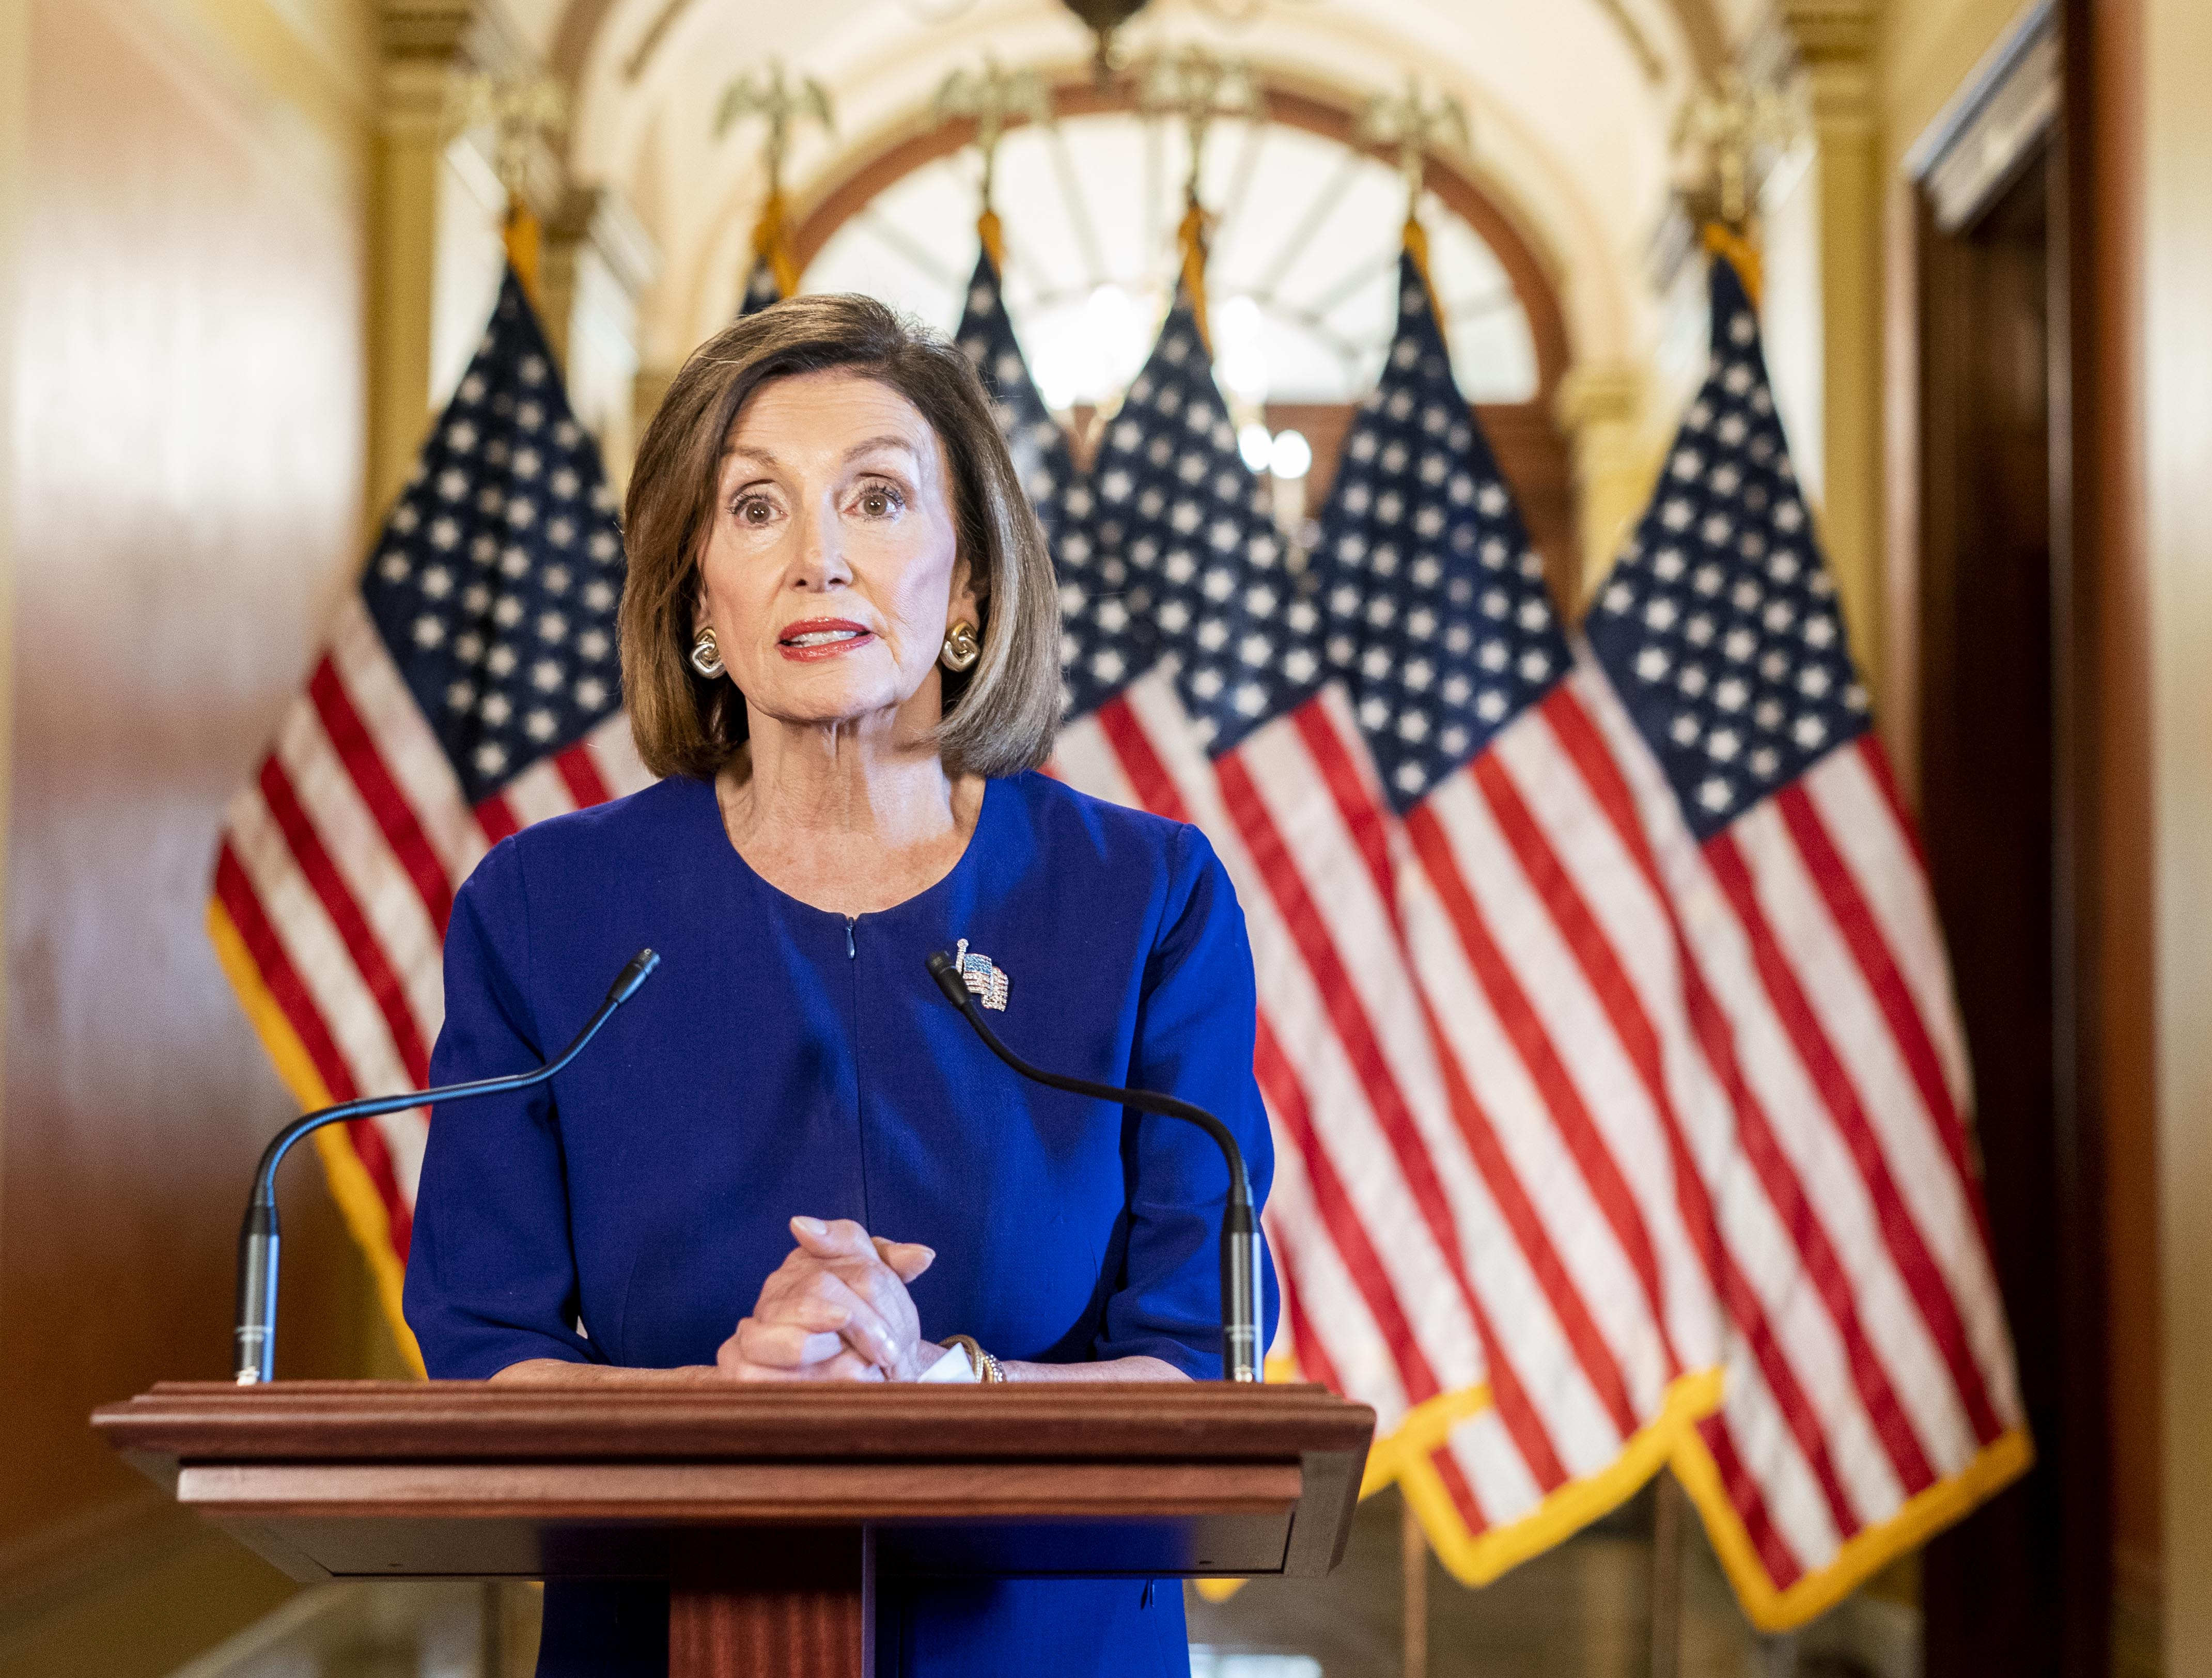 Nancy Pelosi delivers a speech concerning a formal impeachment inquiry into President Donald Trump. (Melina Mara/The Washington Post via Getty Images)